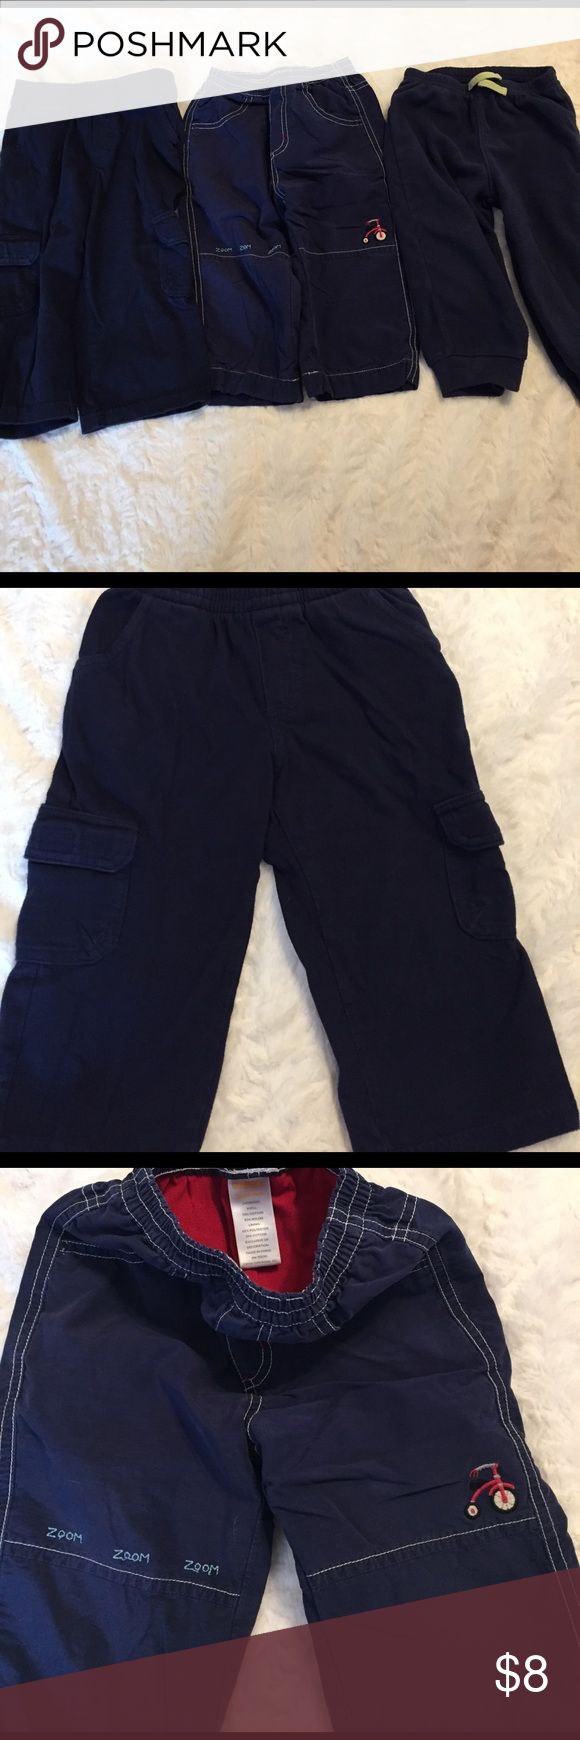 Bundle of two boys 18 Month elastic waist pants Toughskins navy elastic waist pants with front pockets and side Velcro cargo pockets; EUC, size 18 Months. Gymboree cotton lined tricycle zoom, zoom, zoom elastic waist pants with front and back pockets; good used condition, Size 18-24 months. Smoke free/cat free/clean home. Gymboree Bottoms Casual